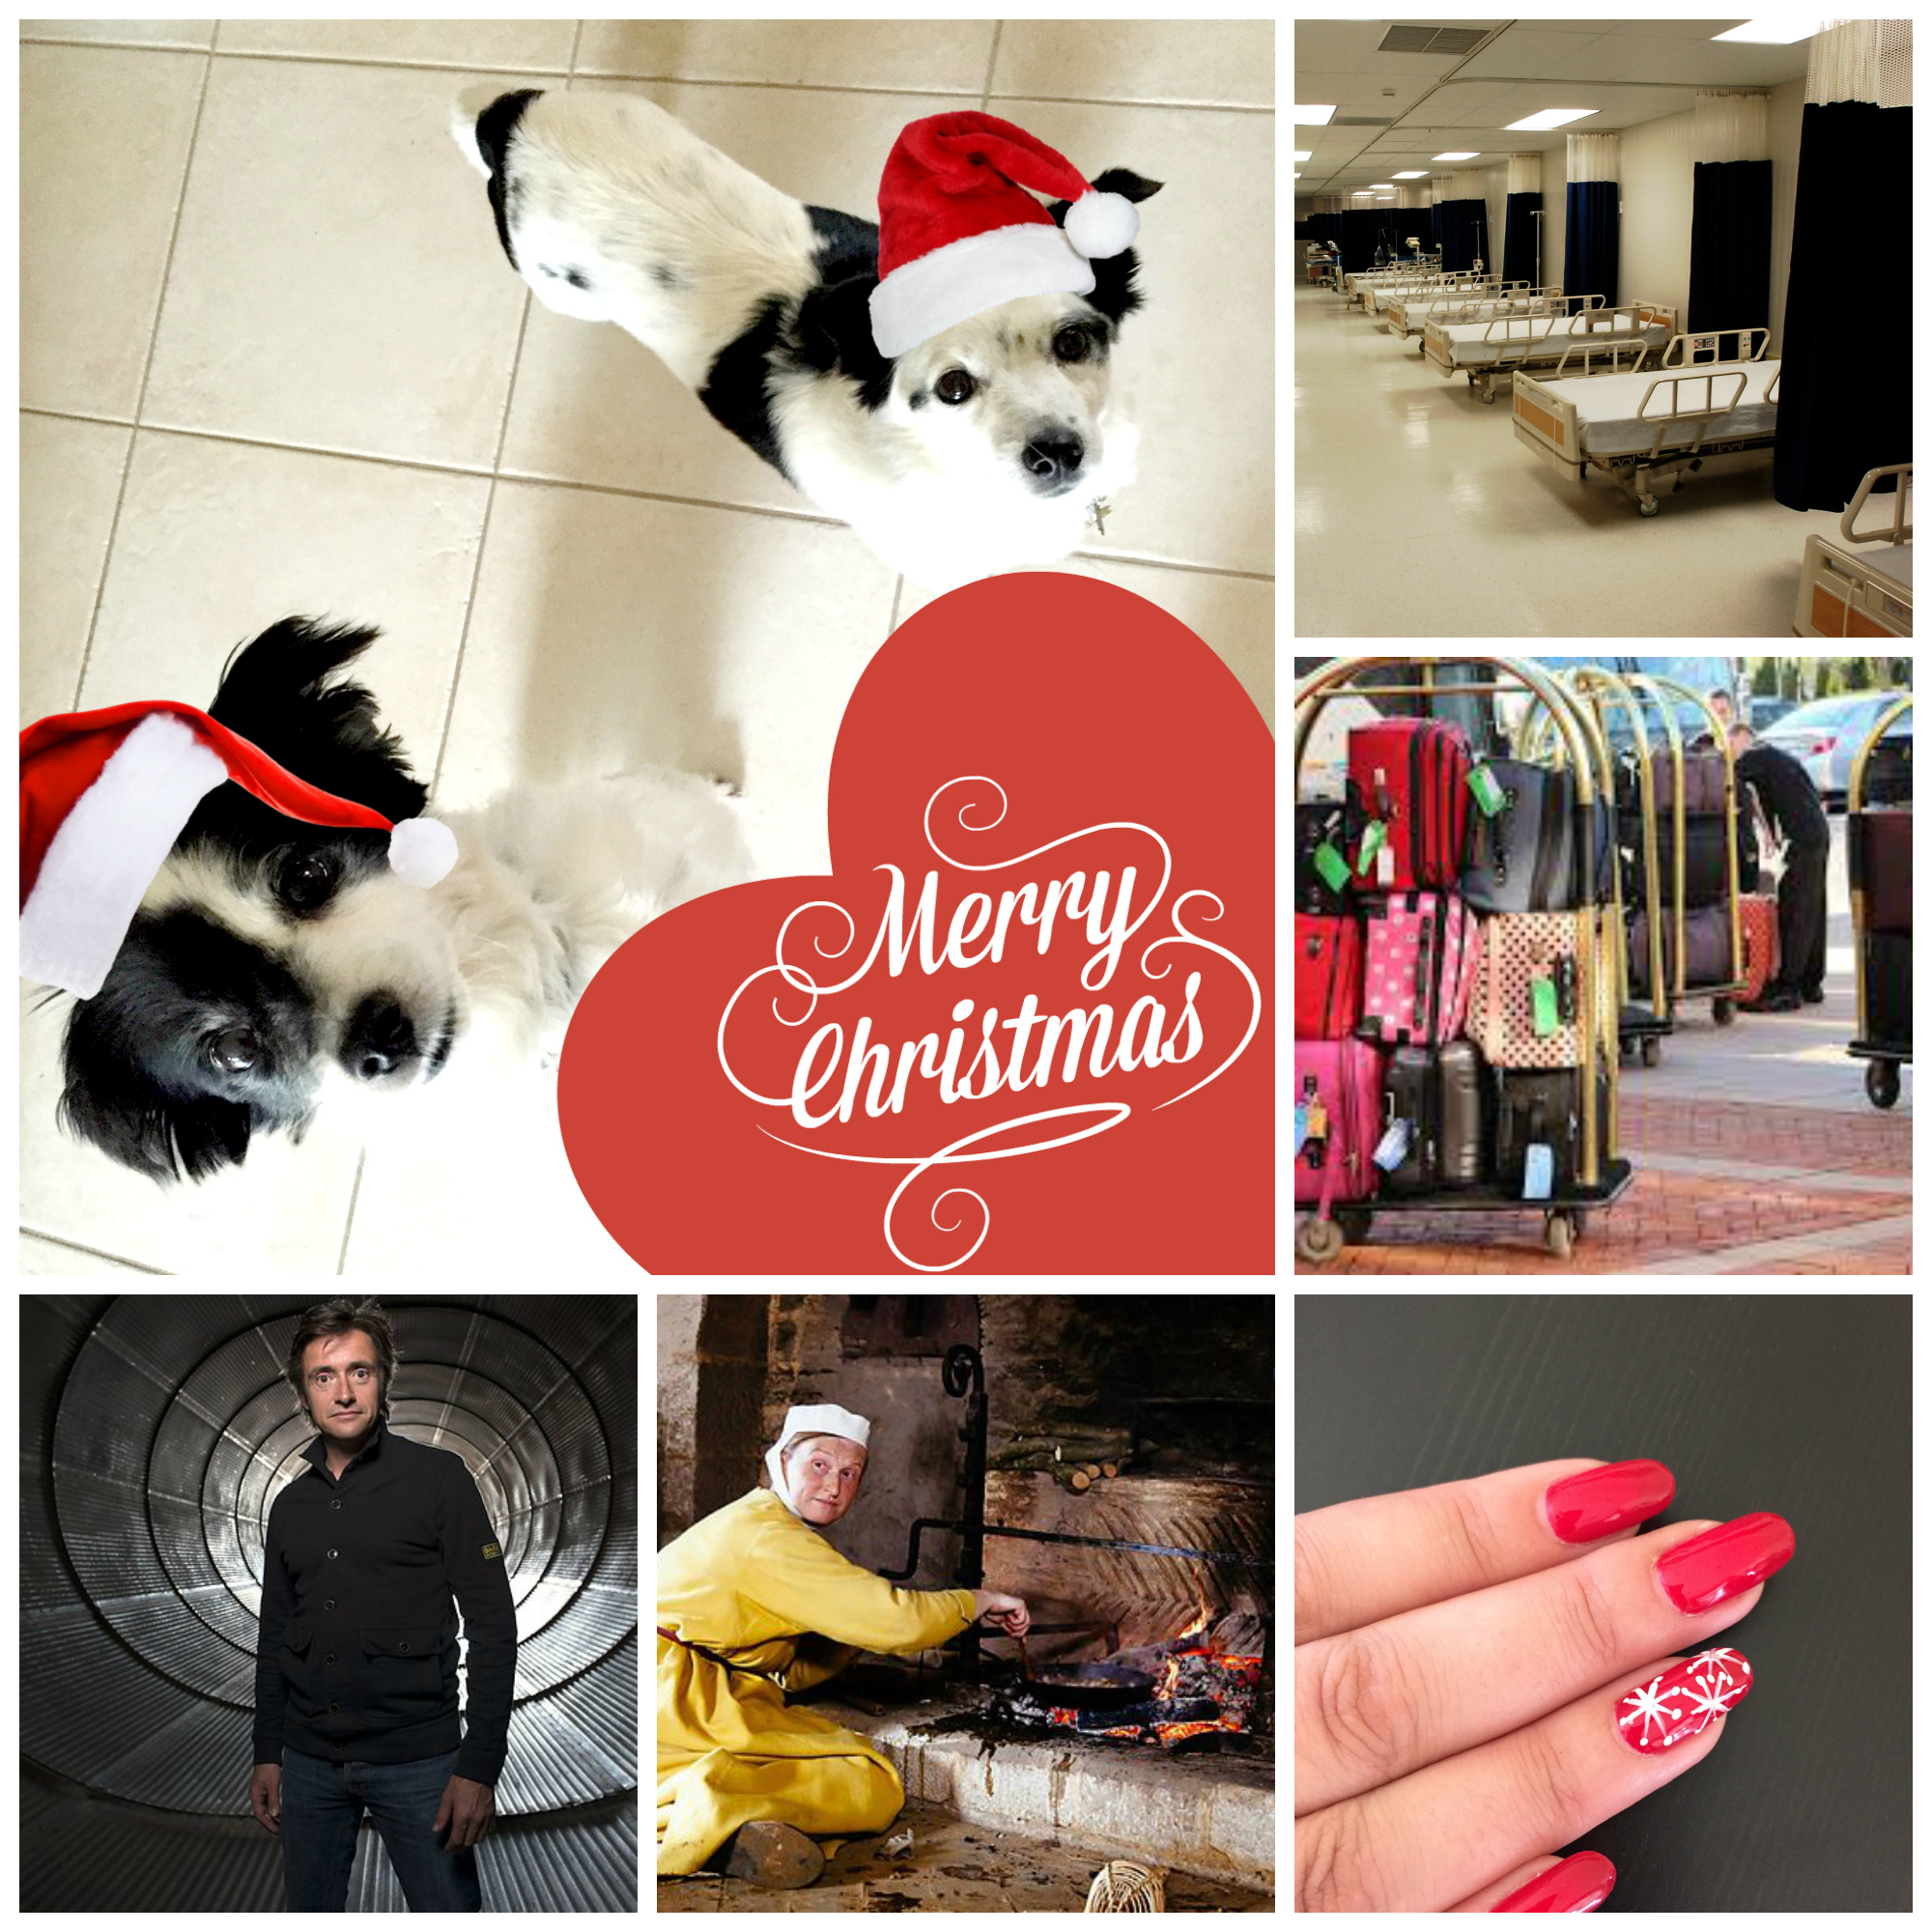 Second Look Sunday 21 December 14 - My Last Post For 2014